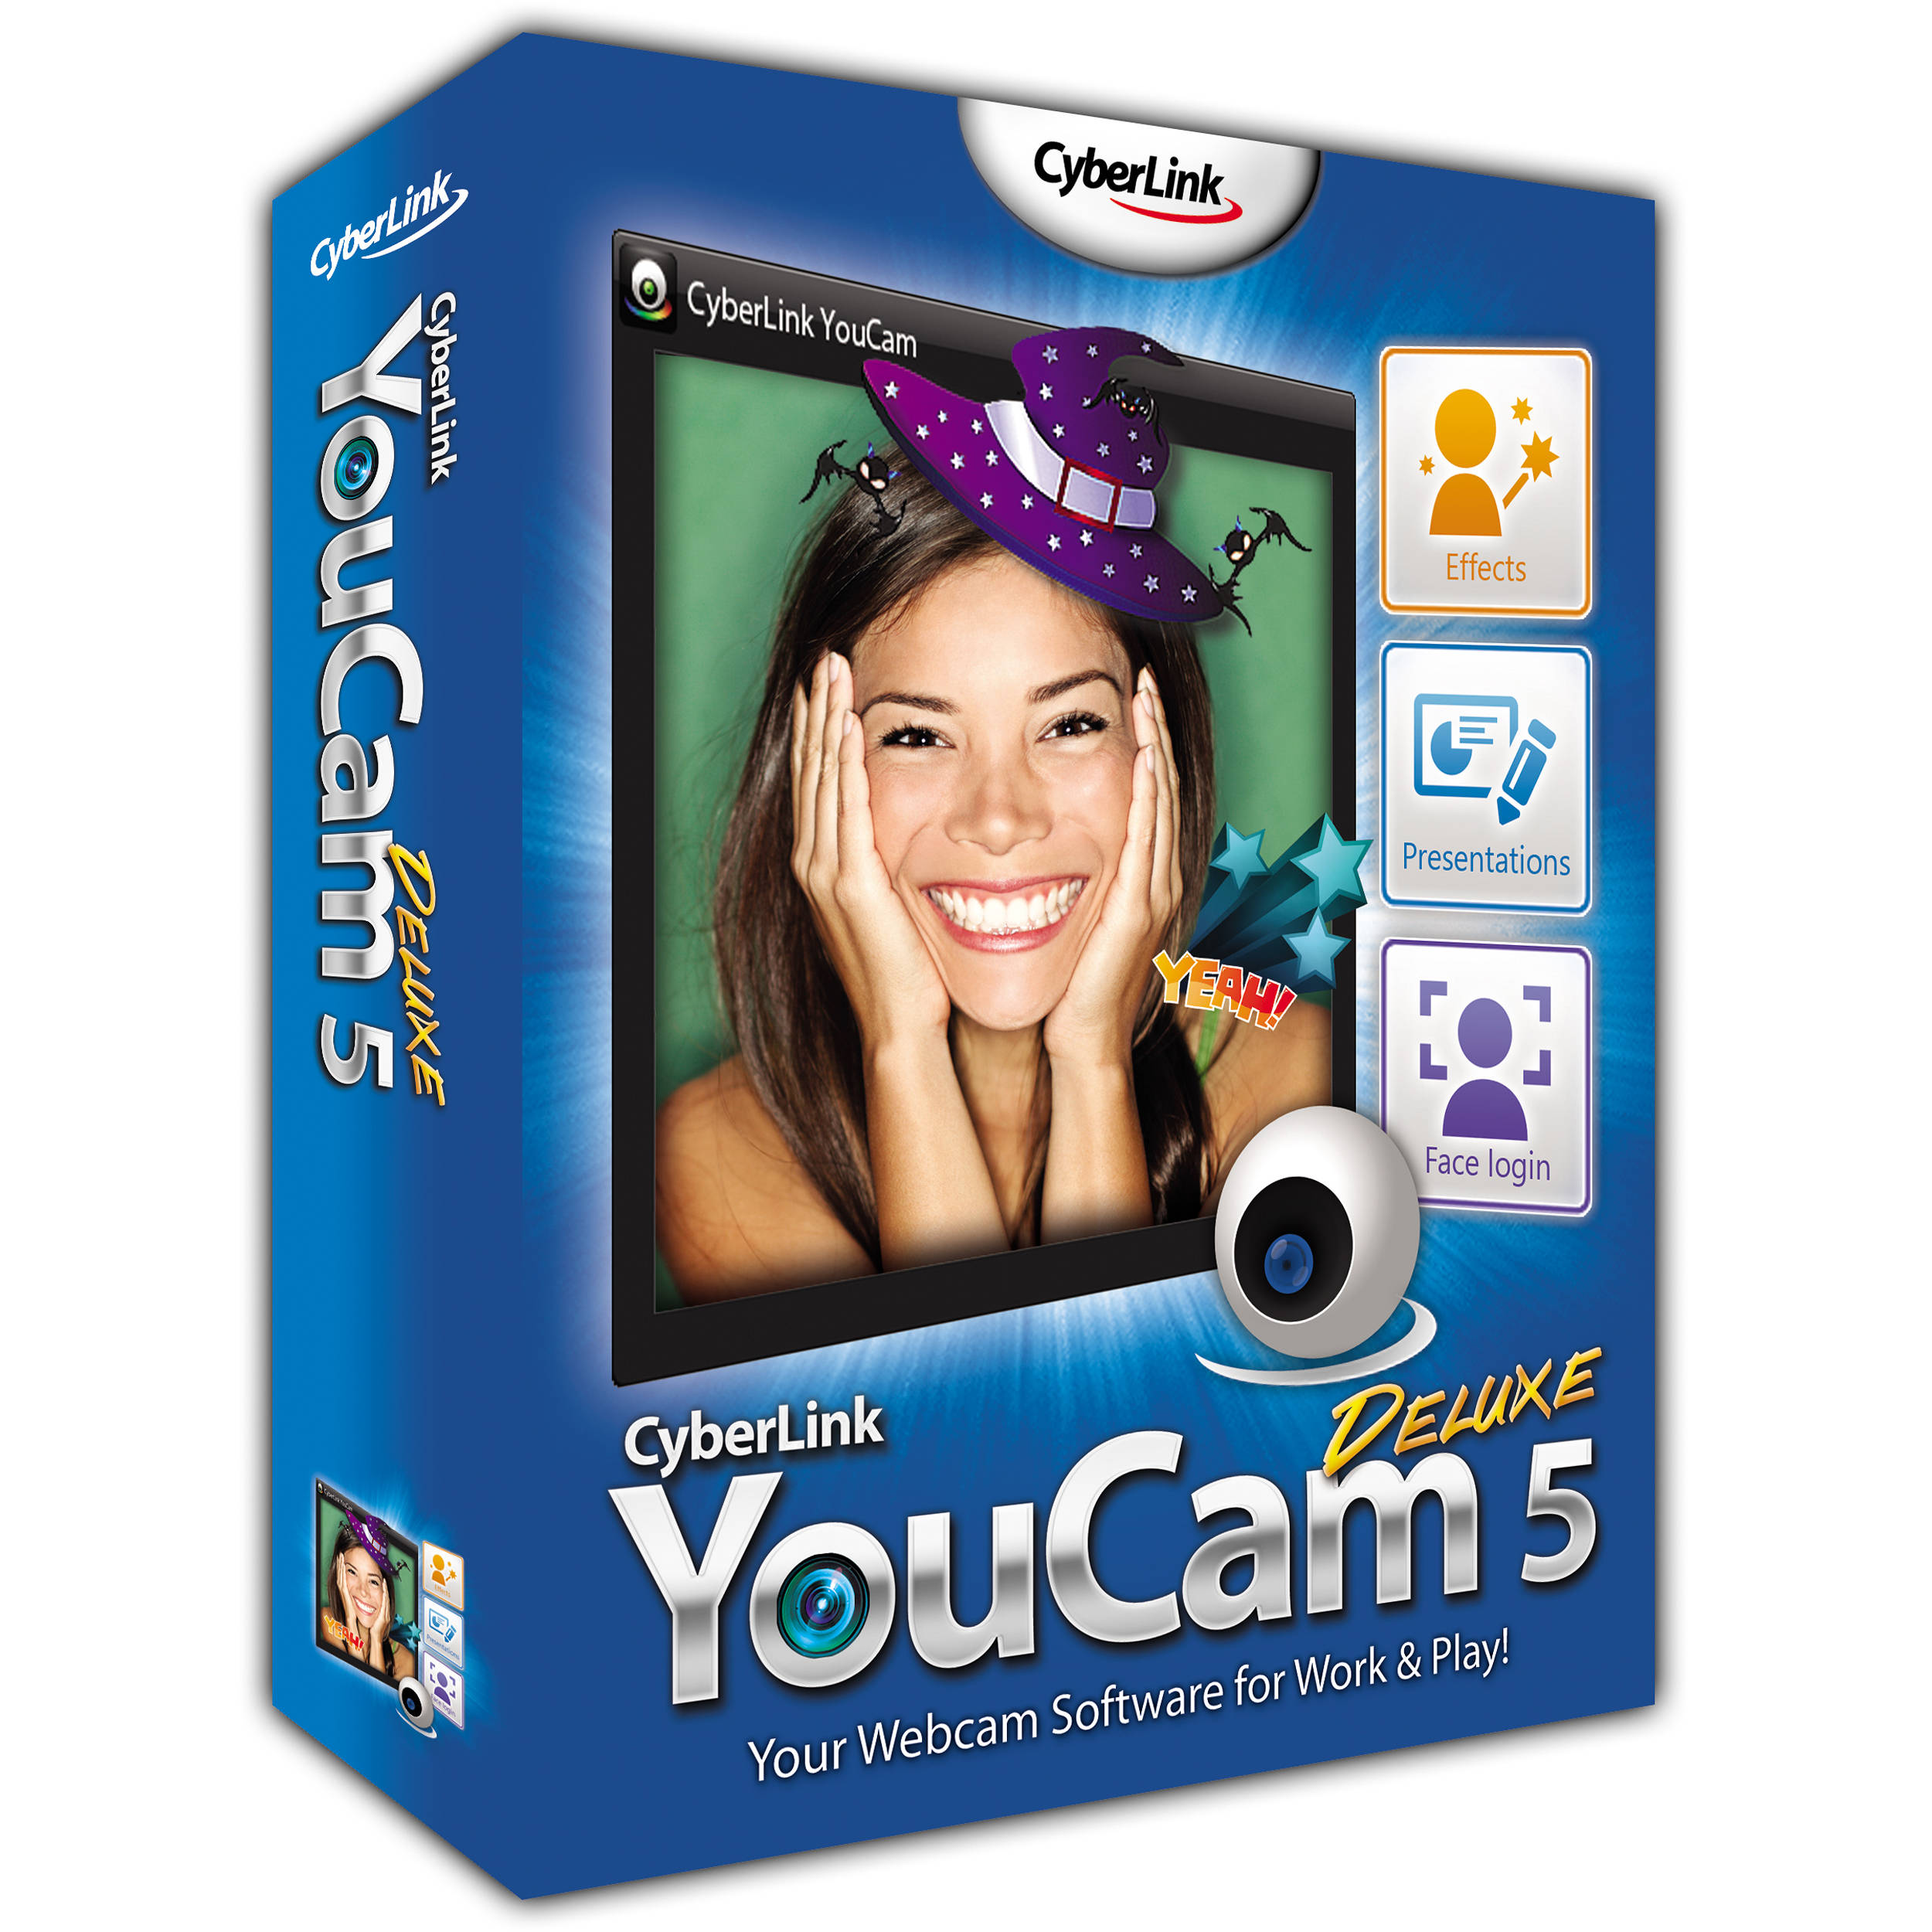 Cyberlink youcam 5 deluxe with crack